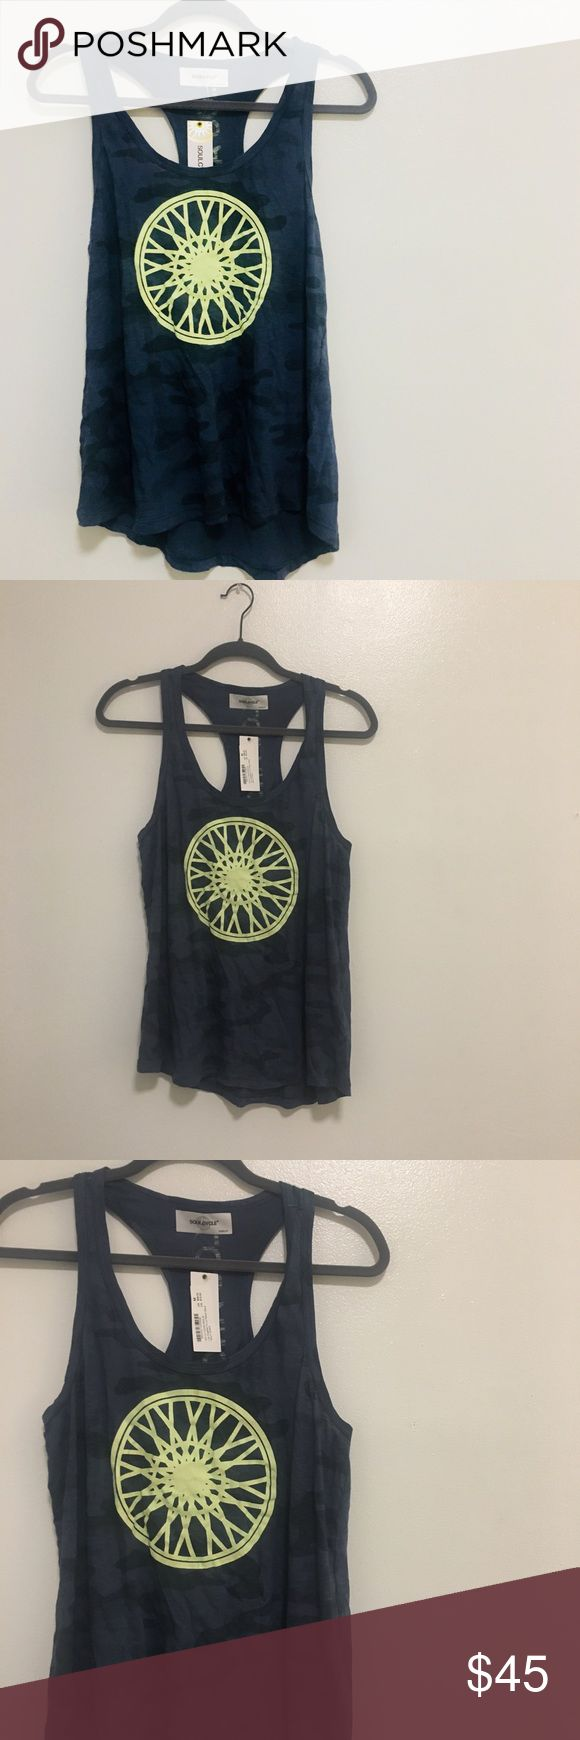 // NWT SoulCycle Navy Camo LA Tank Top new with tags navy blue camo tank top with yellow soulcycle wheel. back of the tank says Los Angeles. perfect workout tank! soulcycle Tops Tank Tops